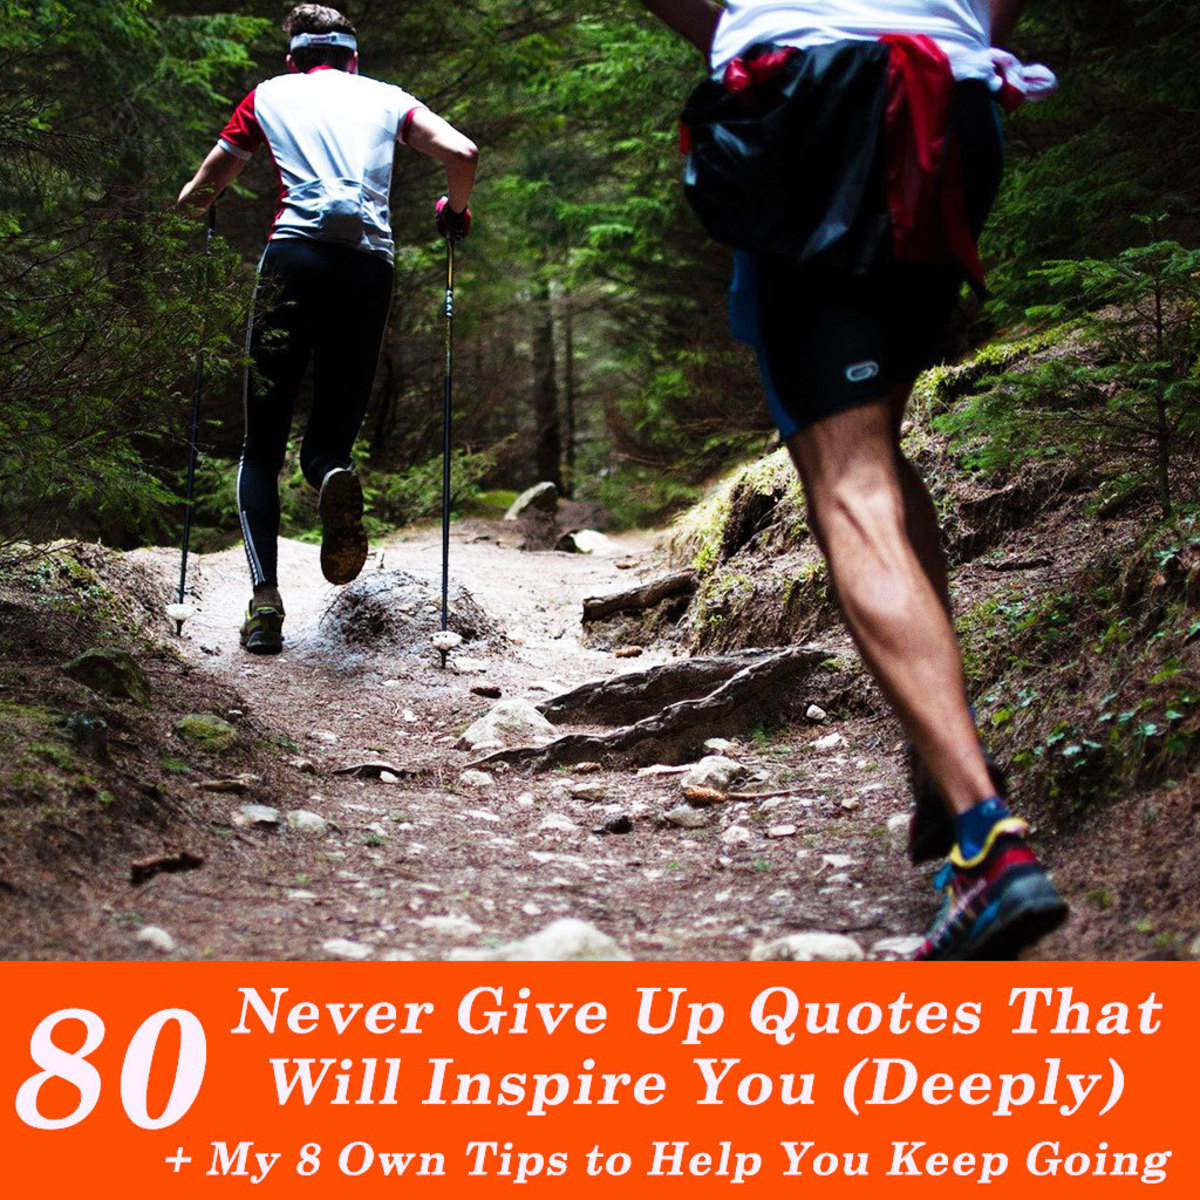 80 Never Give Up Quotes That Will Inspire You (Deeply)